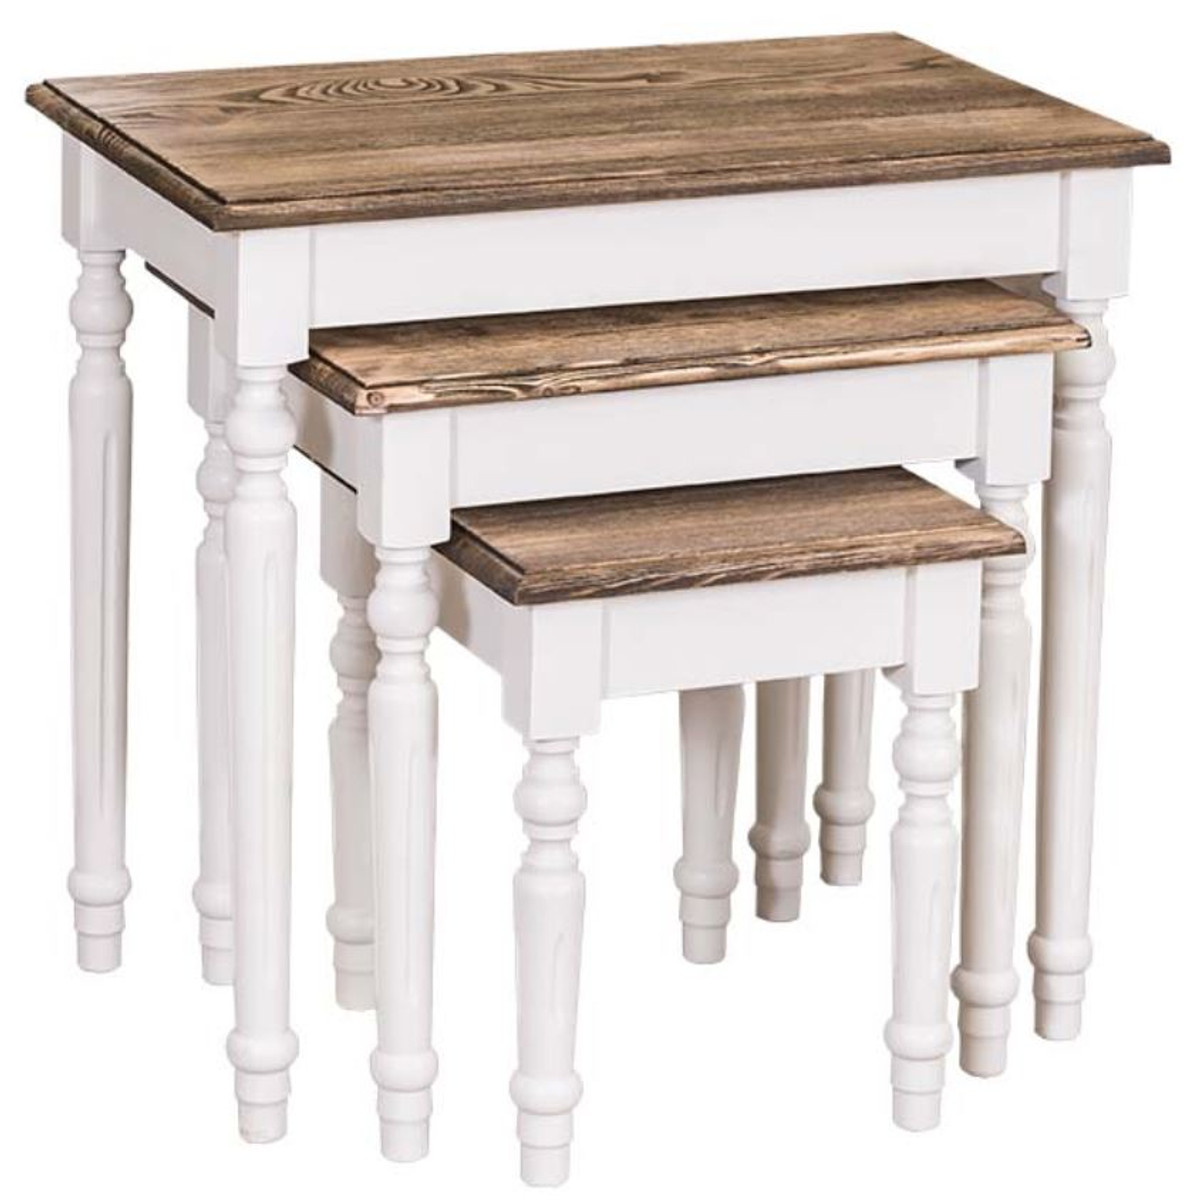 Casa Padrino Country Style Side Table Set Of 3 White / Brown   Country Style  Solid Wood Furniture